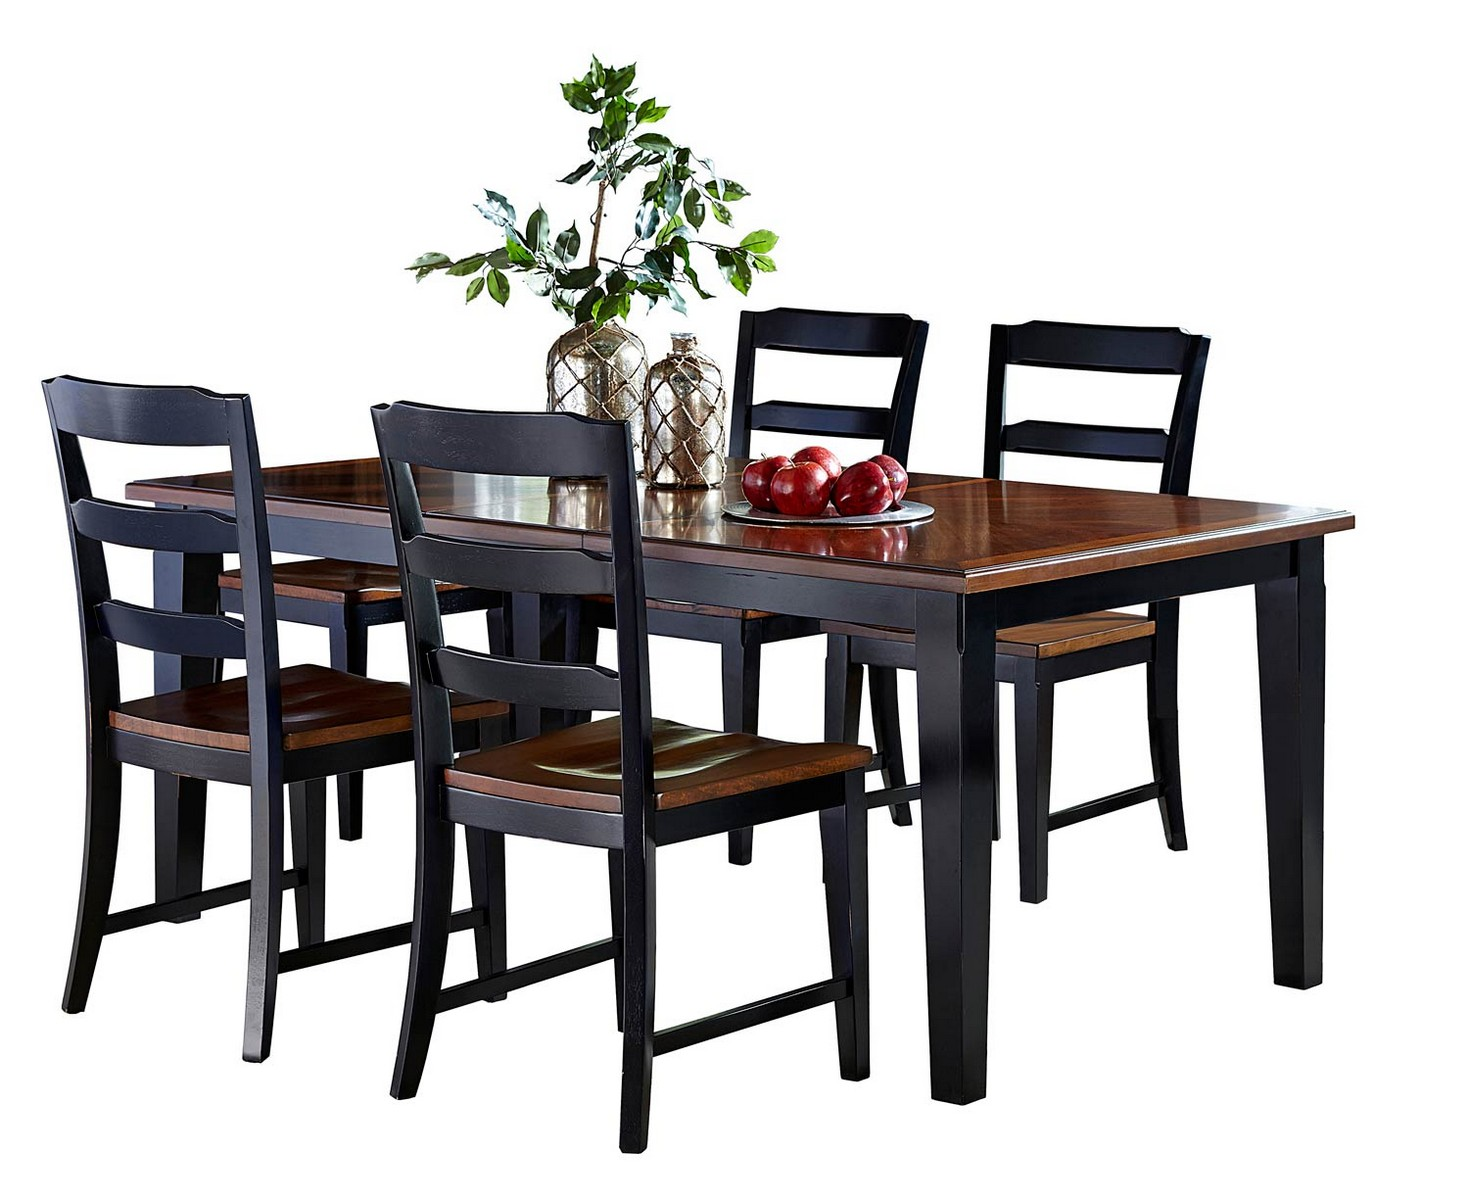 Hillsdale Avalon 5 PC Dining Set   Black/Cherry